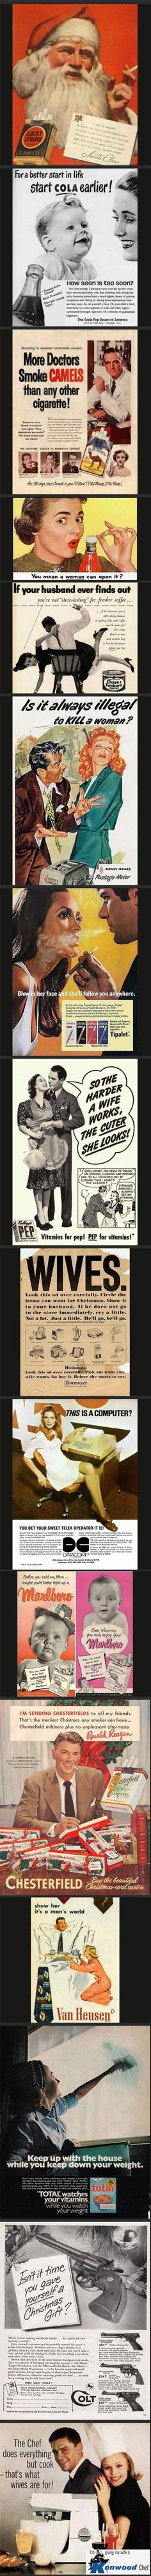 Behind the chair ecards - Wtfunny Vintage Ads 20 Pics